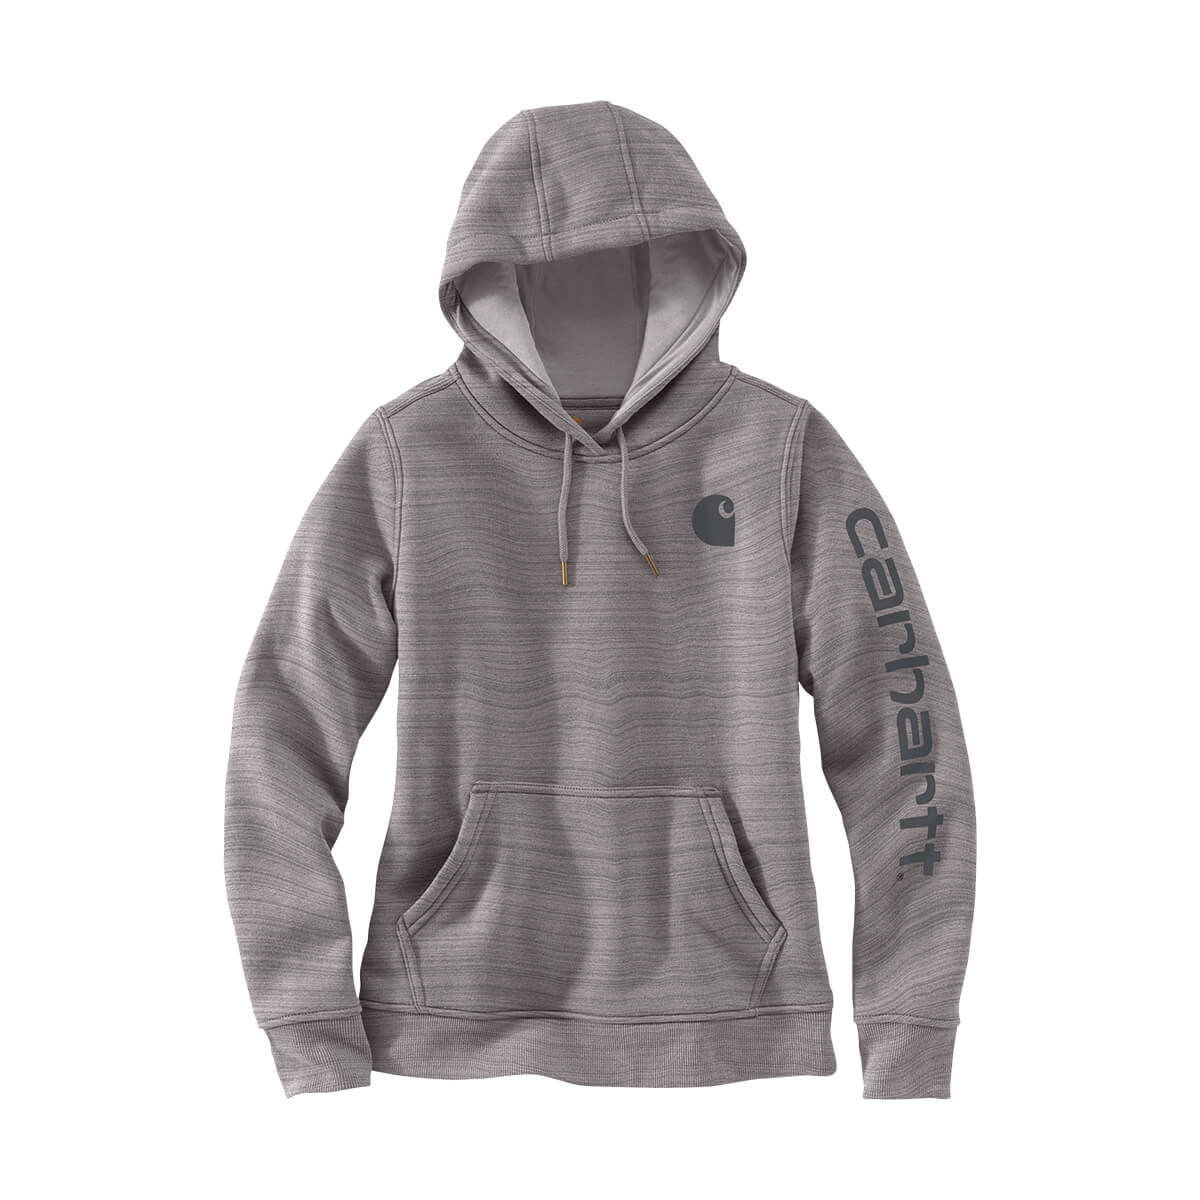 Women's Carhartt Pullover Hoodie with Sleeve Logo